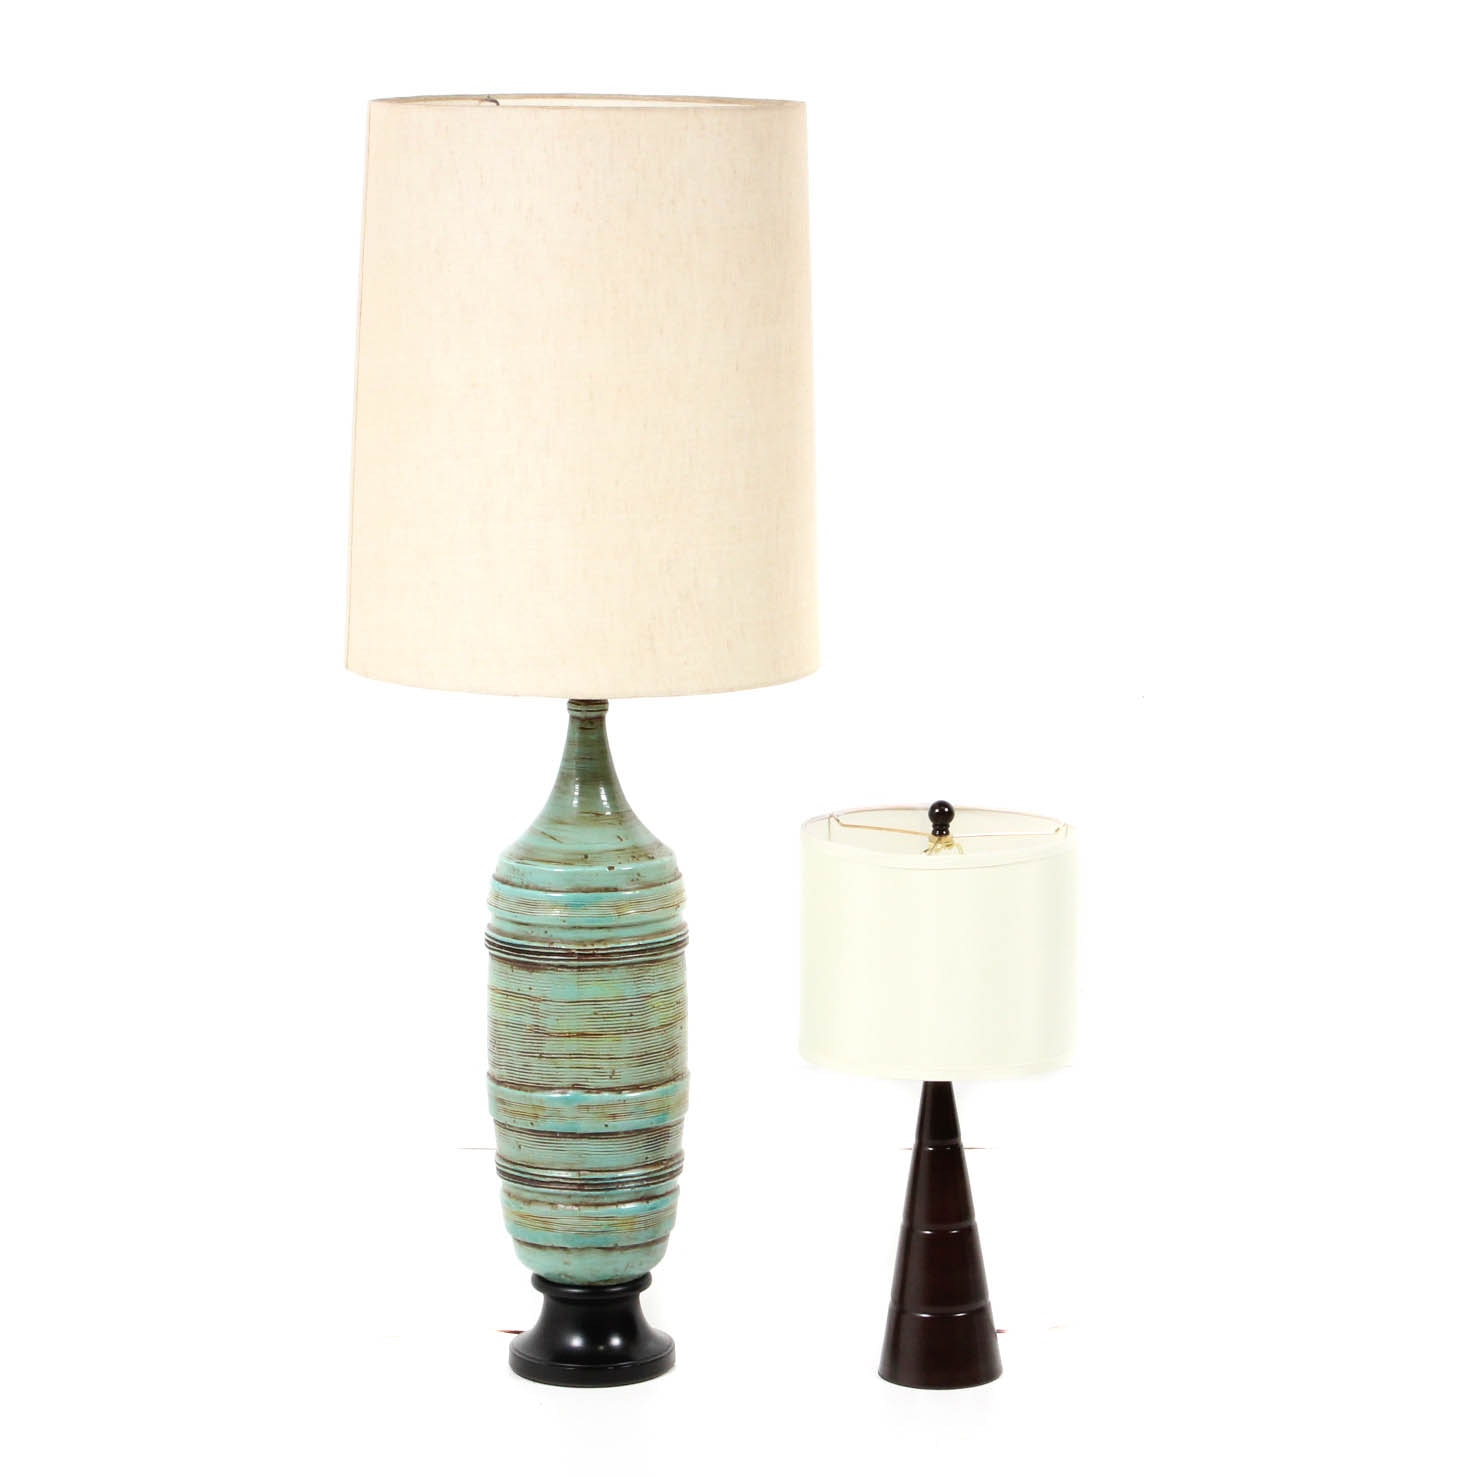 Two Mid Century Modern Style Table Lamps